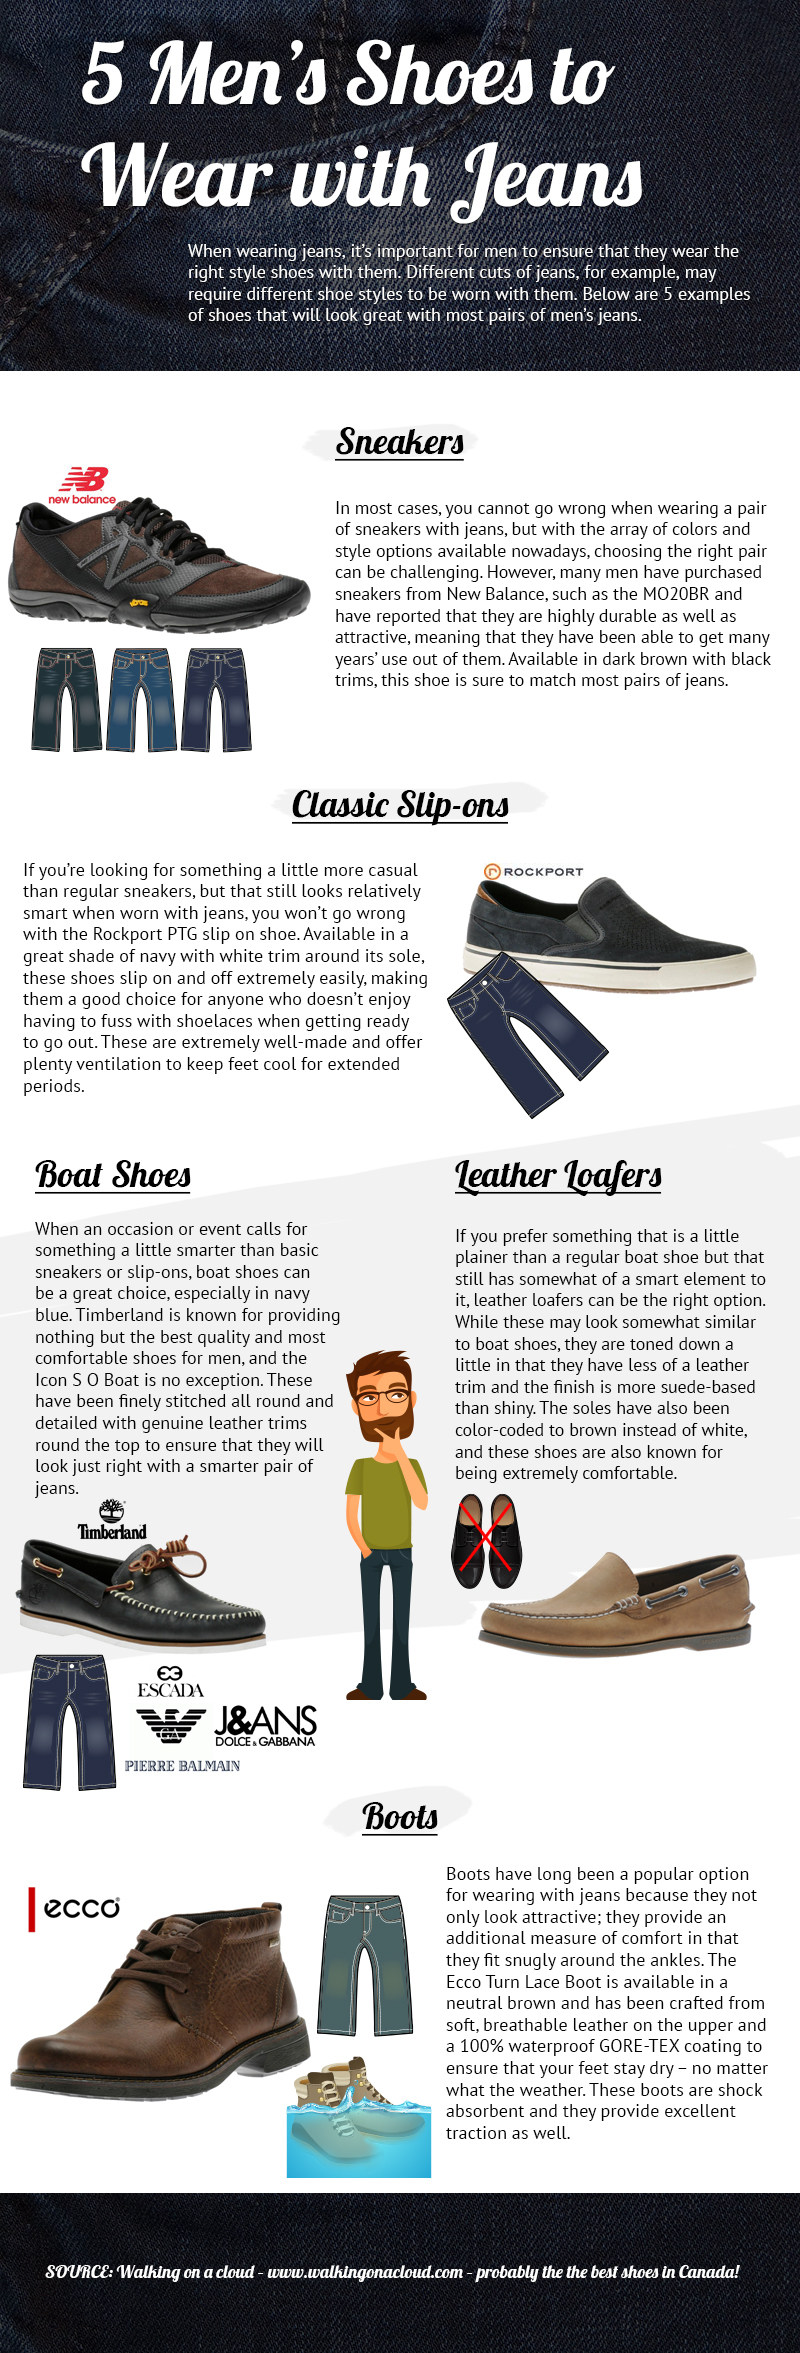 5-Men's-Shoes-to-Wear-with-Jeans